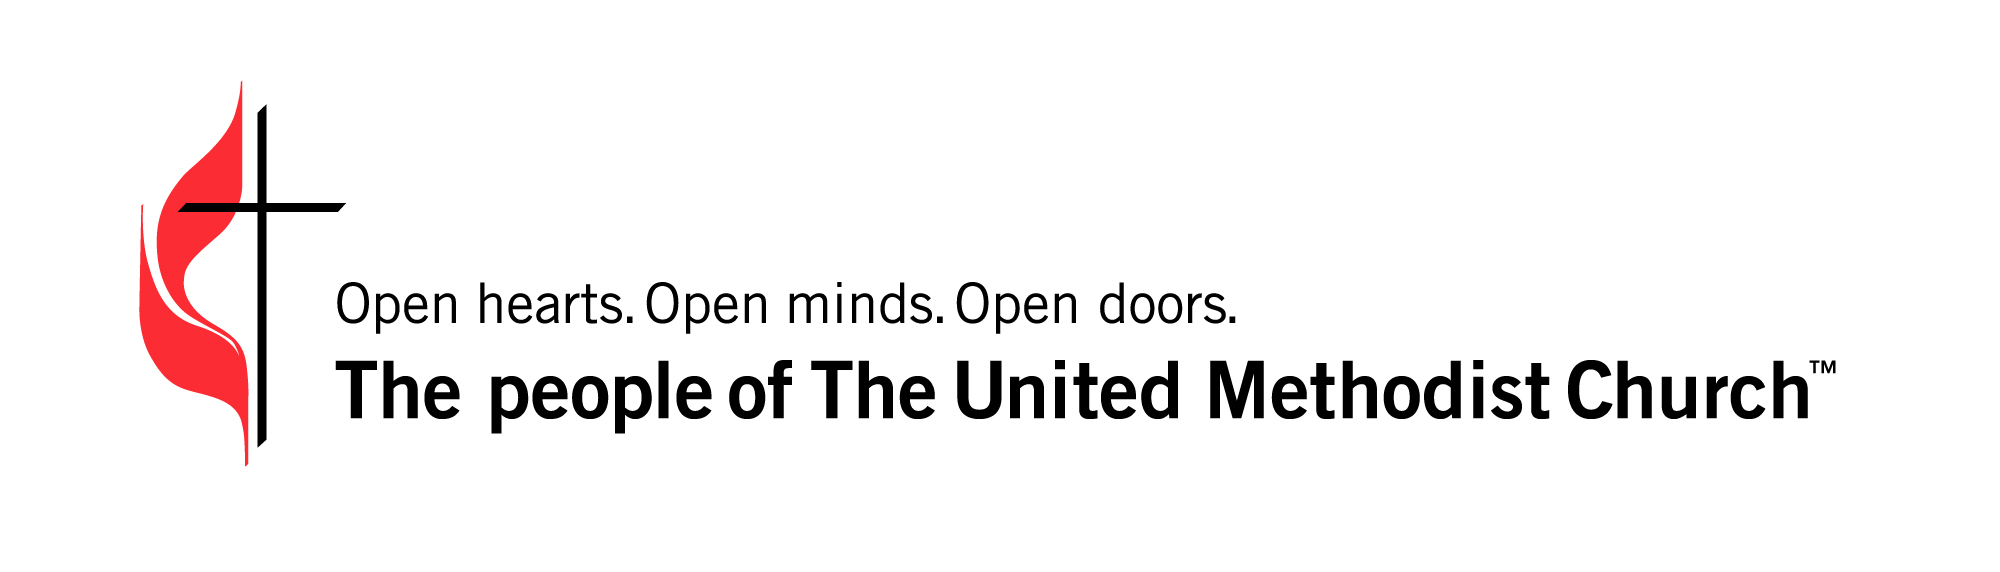 Open hearts.  Open minds.  Open doors.